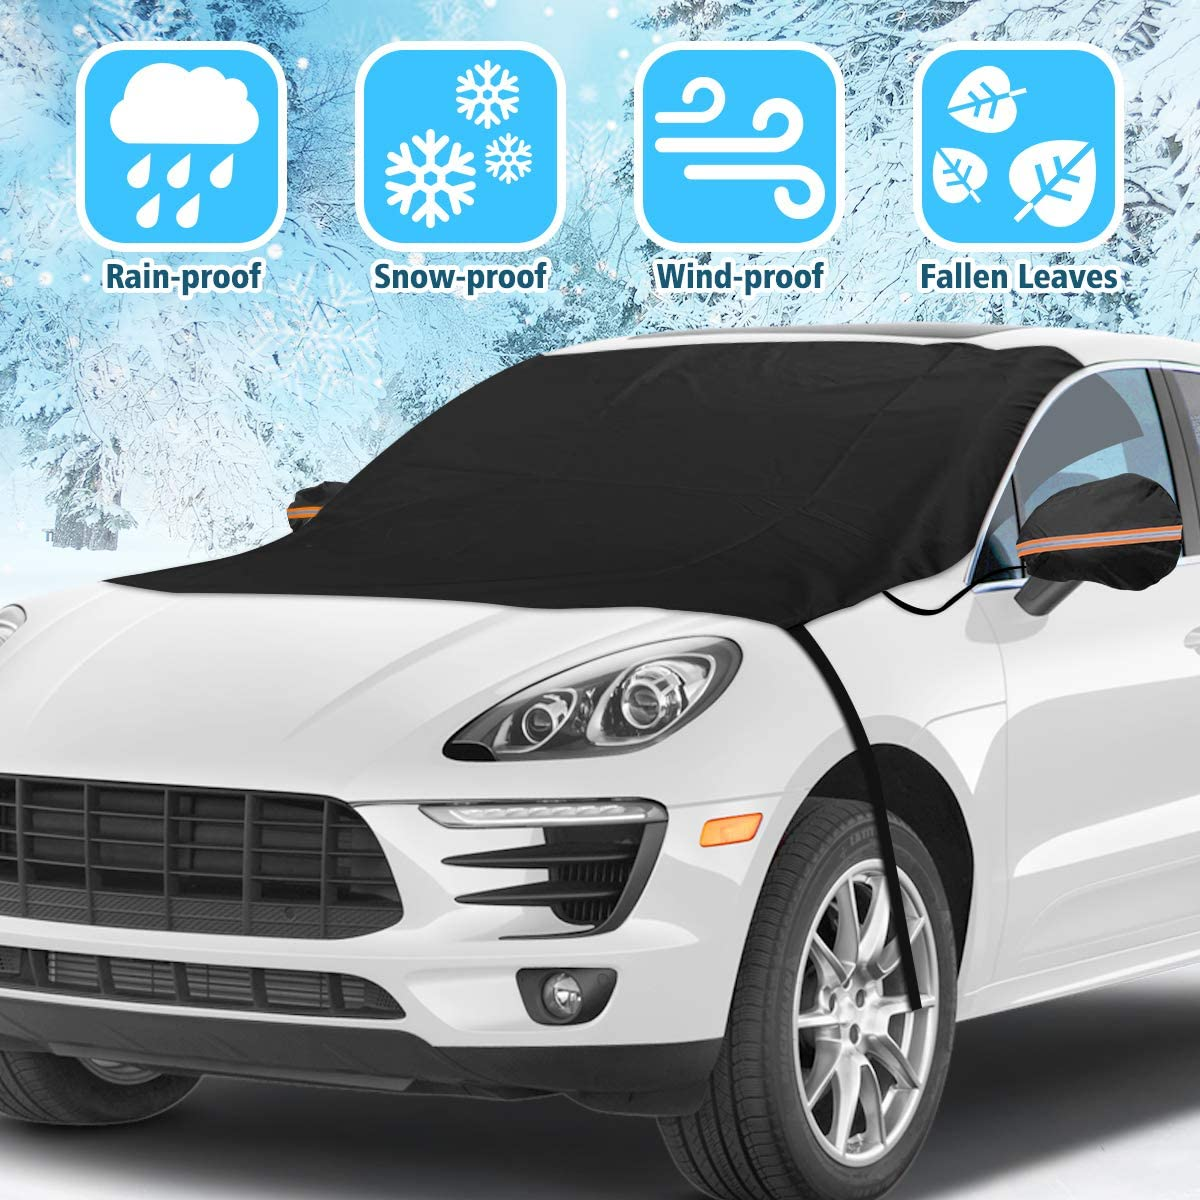 Tvird Car Windshield Snow Cover Upgarde Car Windshield Protection Cover with Reflector and Mirror Covers,Snow Ice Cover//Sun Shade Car Snow Cover for Car//Truck//SUV 82x48.8